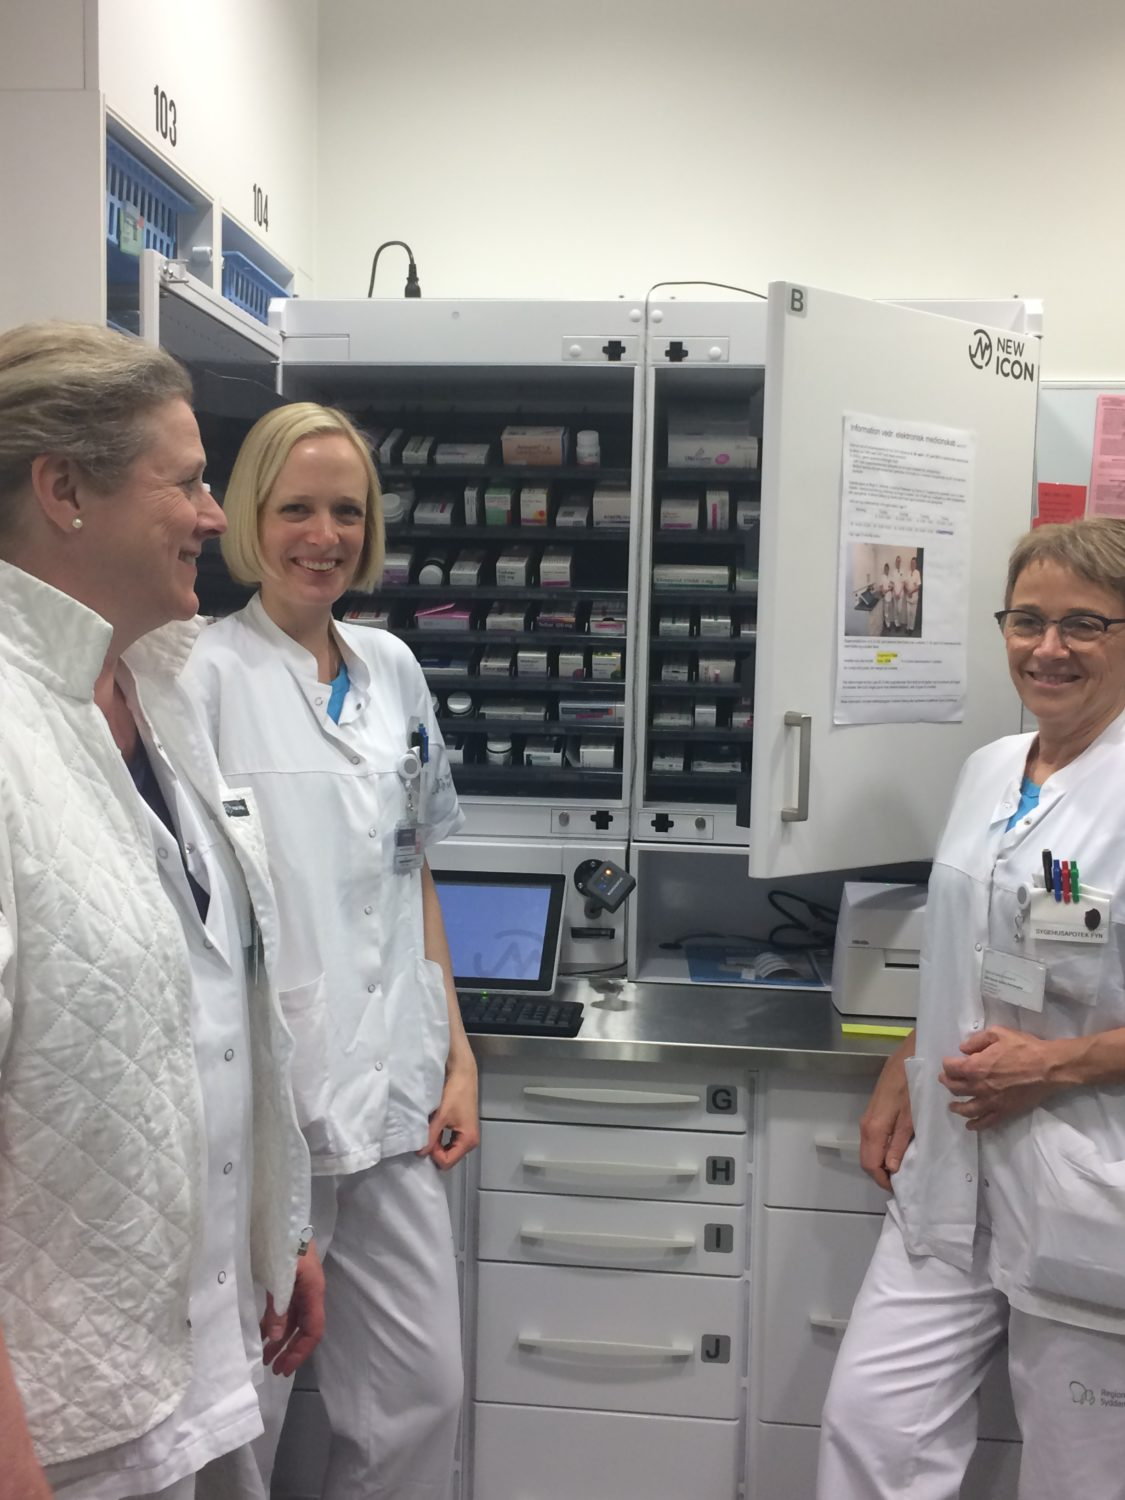 Press Release: Automated Dispensing Cabinet Improving Patient Safety at Odense University Hospital